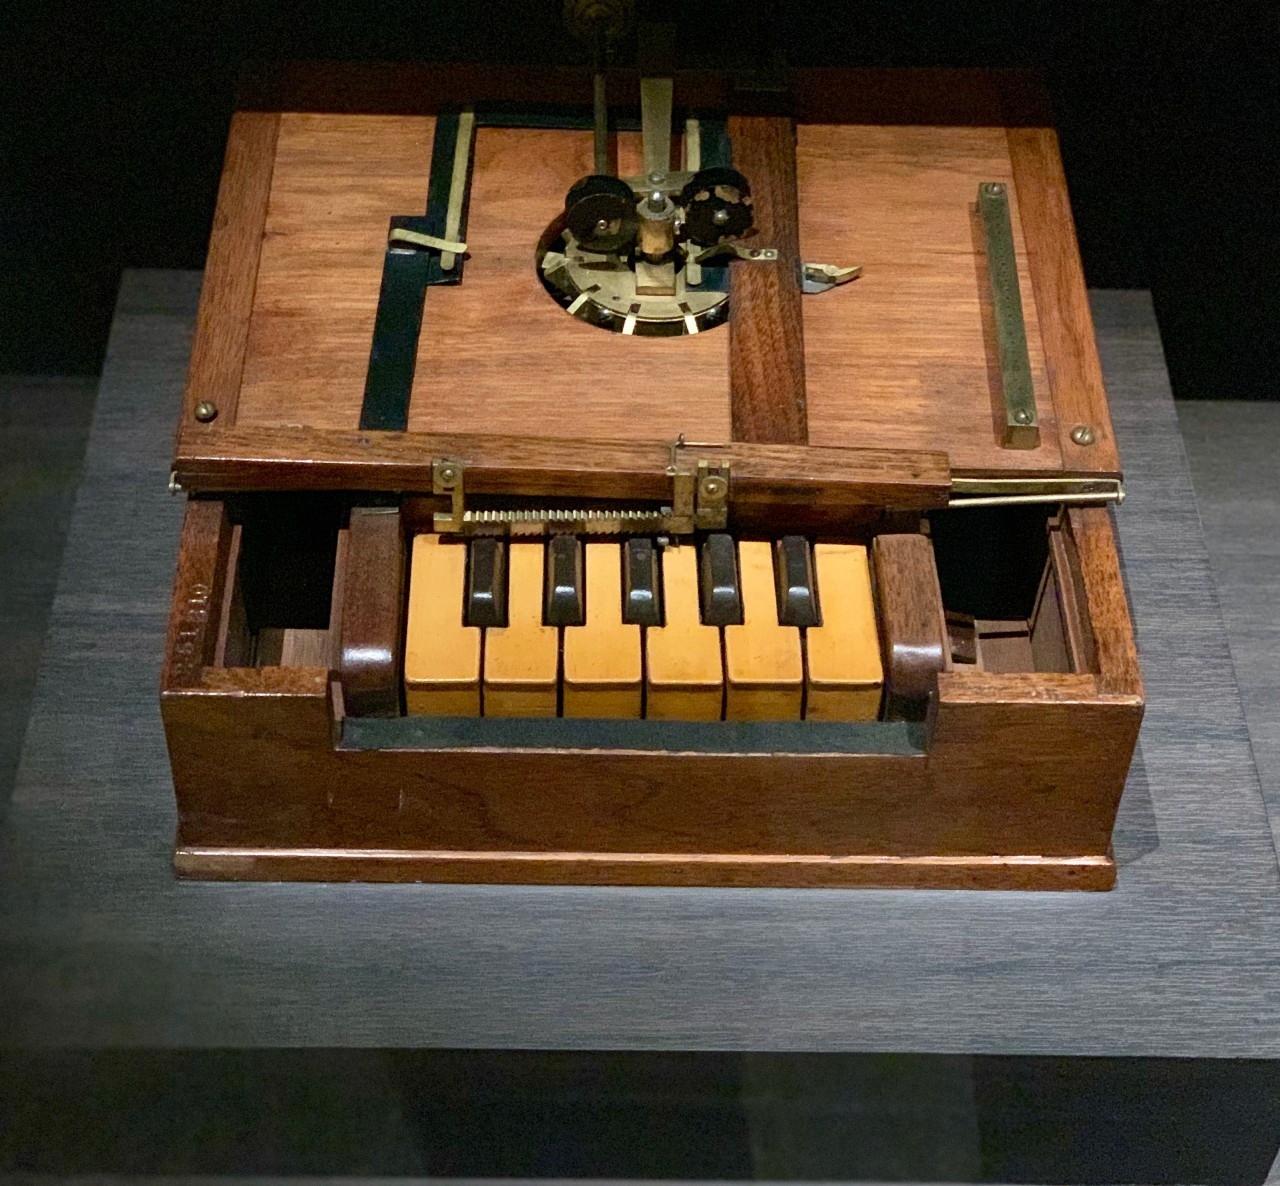 b2ap3_large_1868-Typewriter Celebrating Invention During the 2019 AAAS Annu... Inventing,licensing –,Invention Ambassadors,AAAS